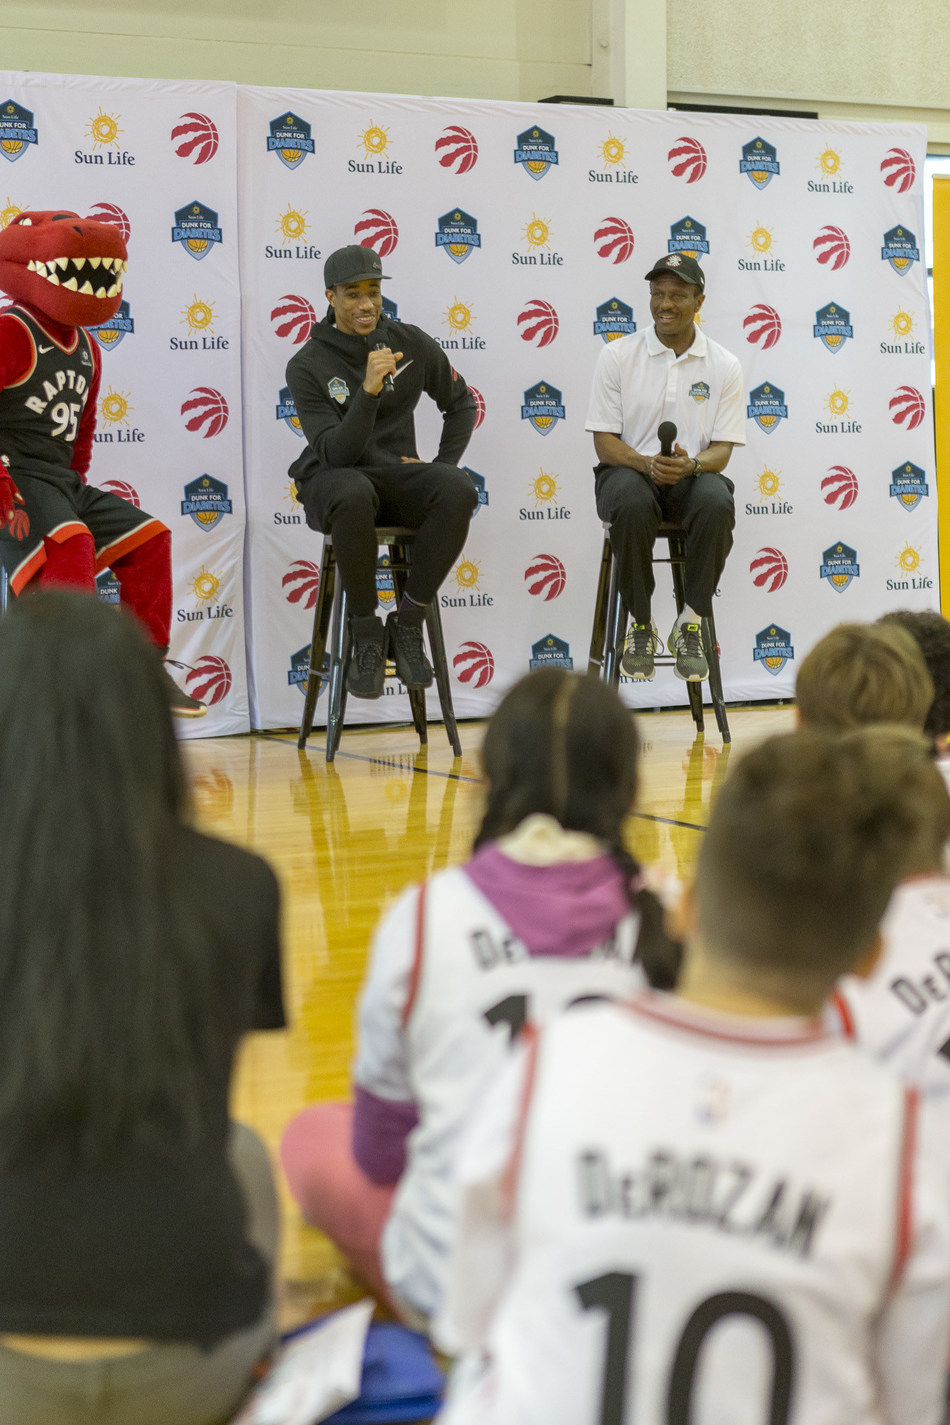 Sun Life Dunk for Diabetes ambassadors DeMar DeRozan of the Toronto Raptors, along with head coach Dwane Casey, helped celebrate the amazing work of the Boys and Girls Clubs of Canada's youth as they successfully completed the type 2 diabetes prevention program. (CNW Group/Sun Life Financial Inc.)